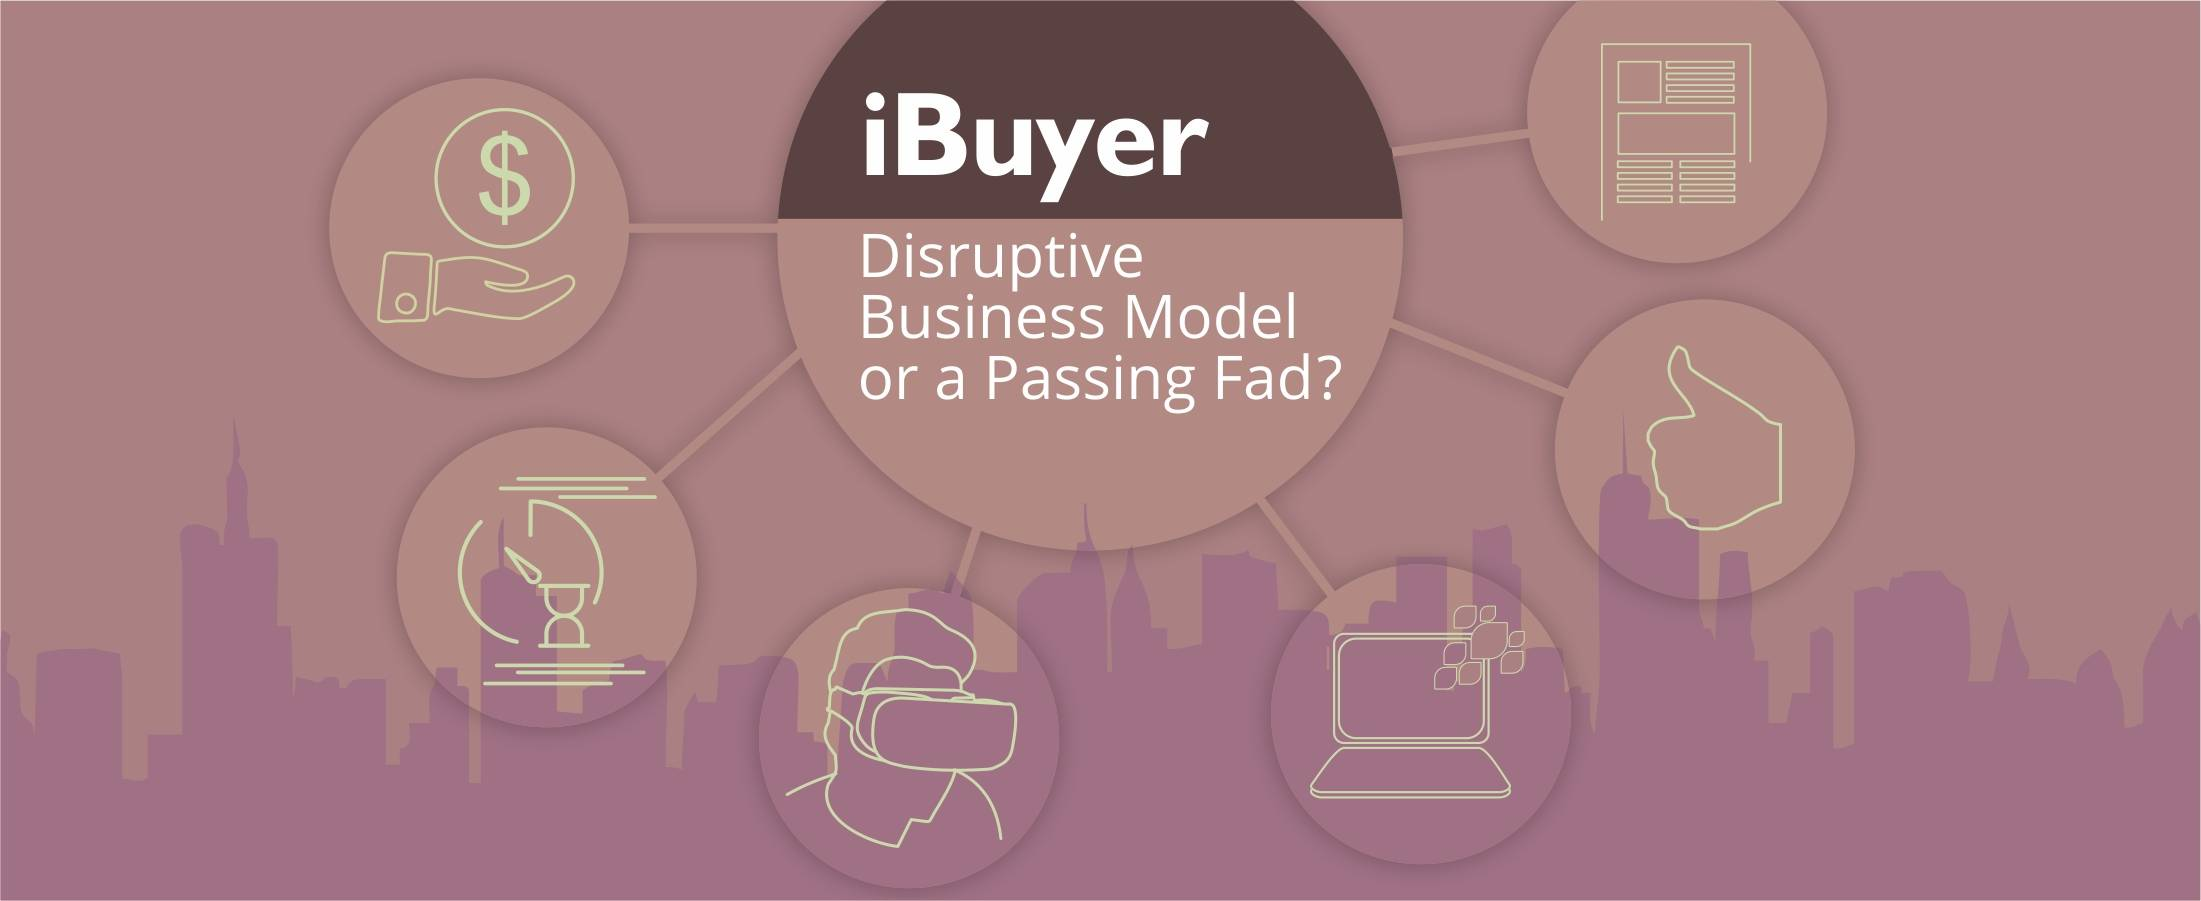 Mobifilia - iBuyer Disruptive Business Model